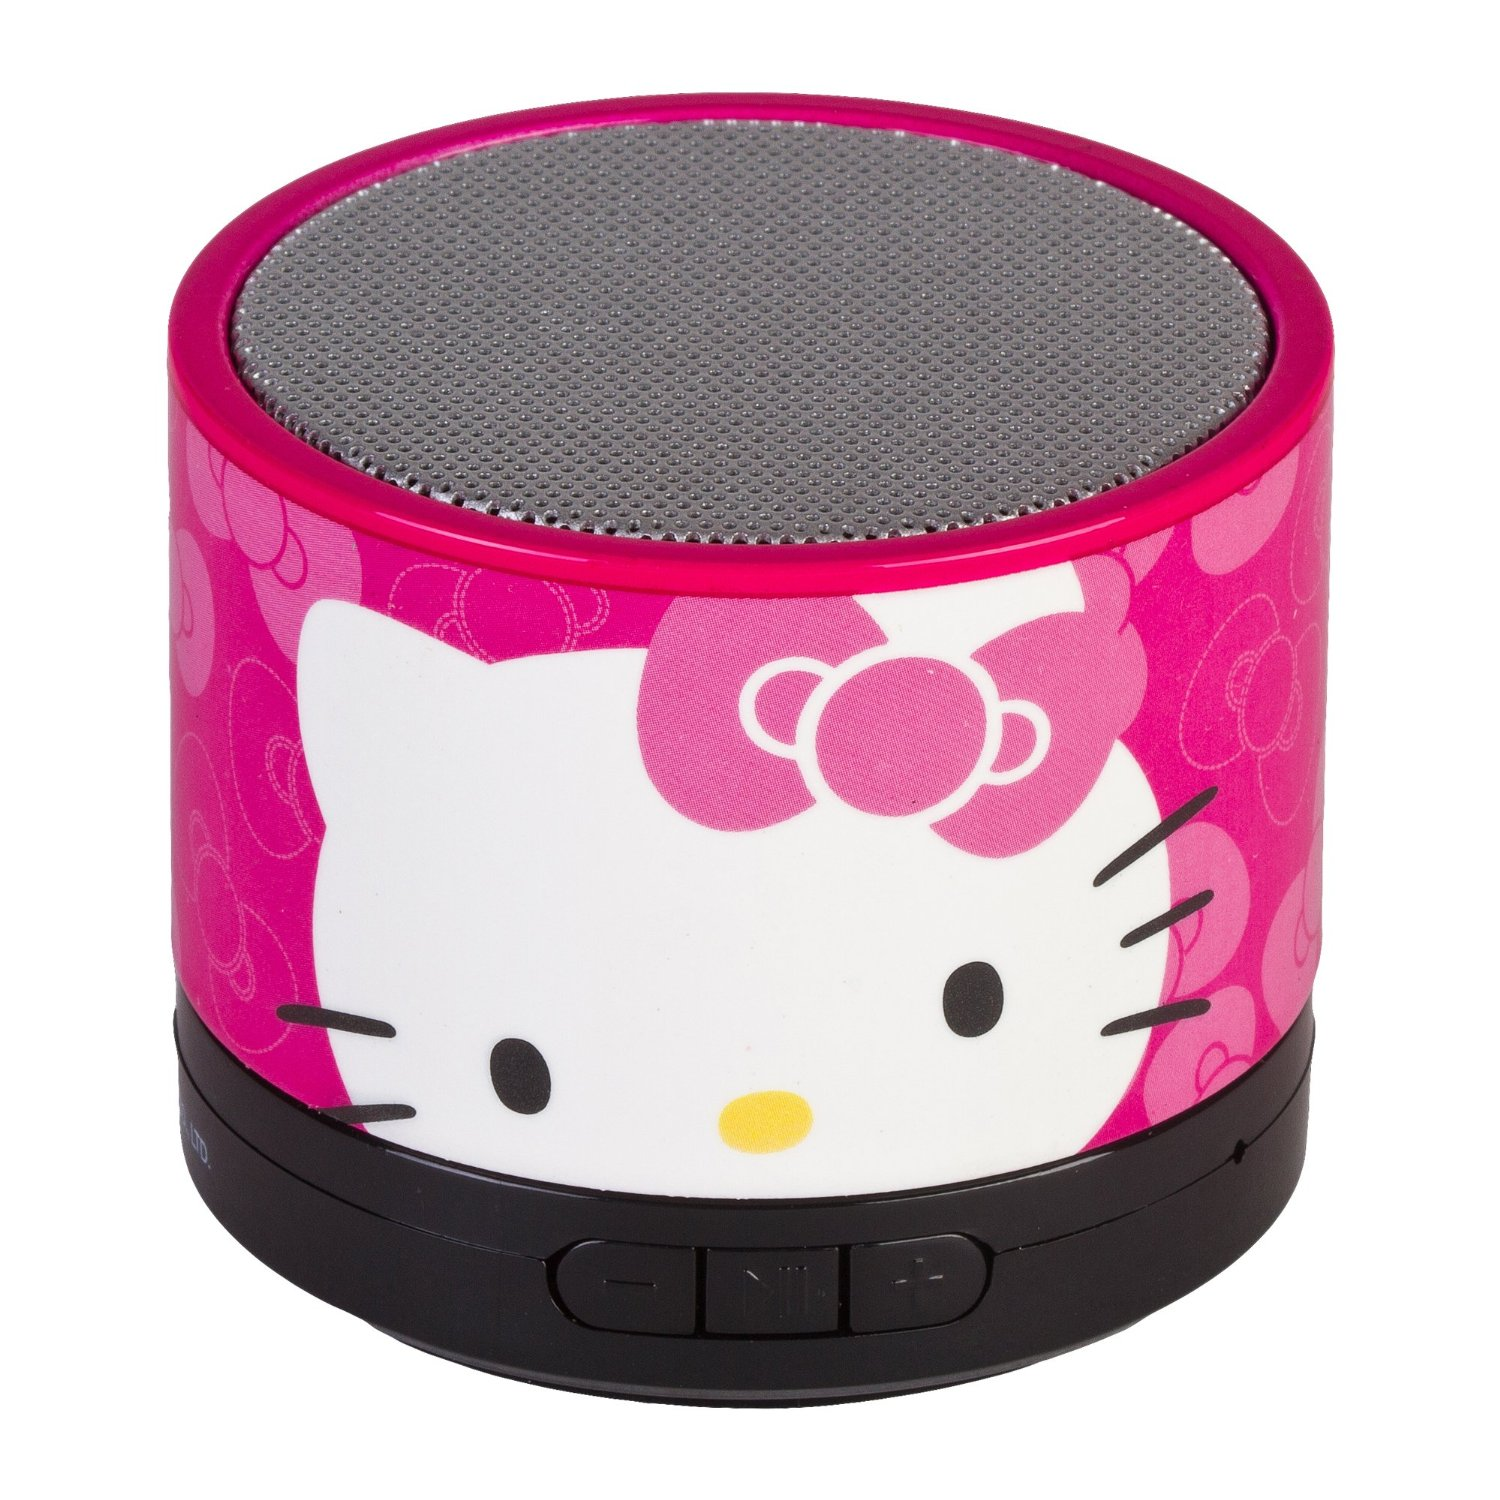 2014 Top Pick Holiday Gifts, presents for everyone!#HelloKittySpeaker Giveaway